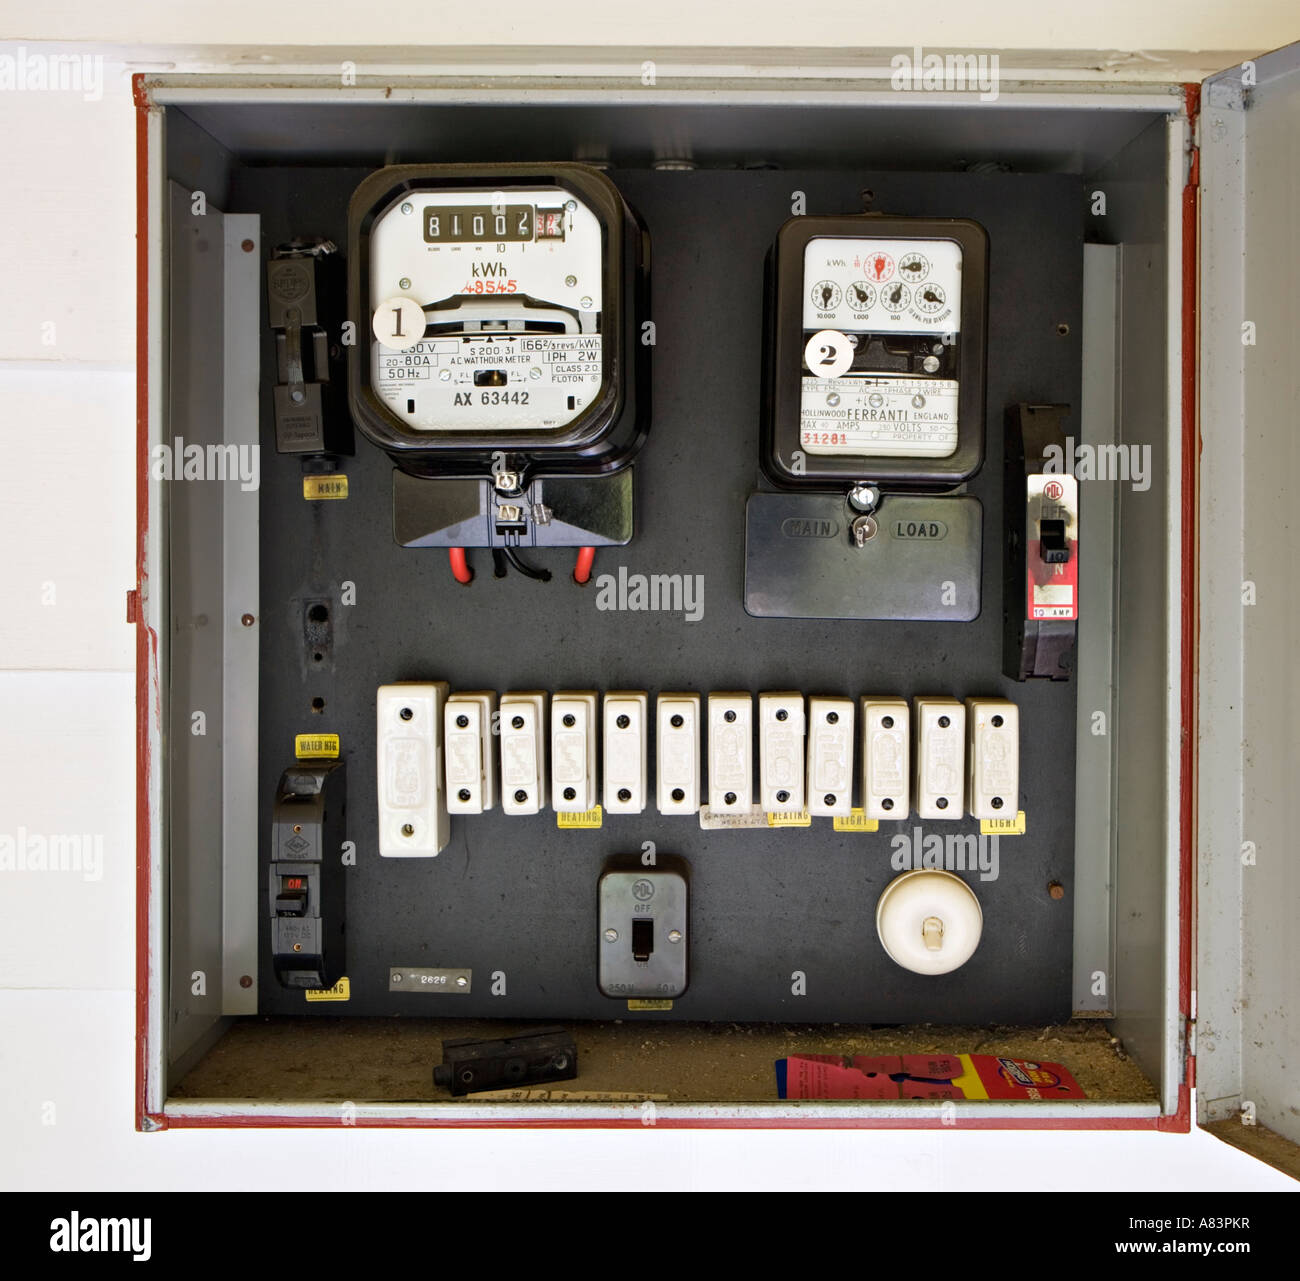 Meter Box Wiring Detailed Schematics Diagram Pv Nz House Power Auto Electrical Base To Breaker Panel